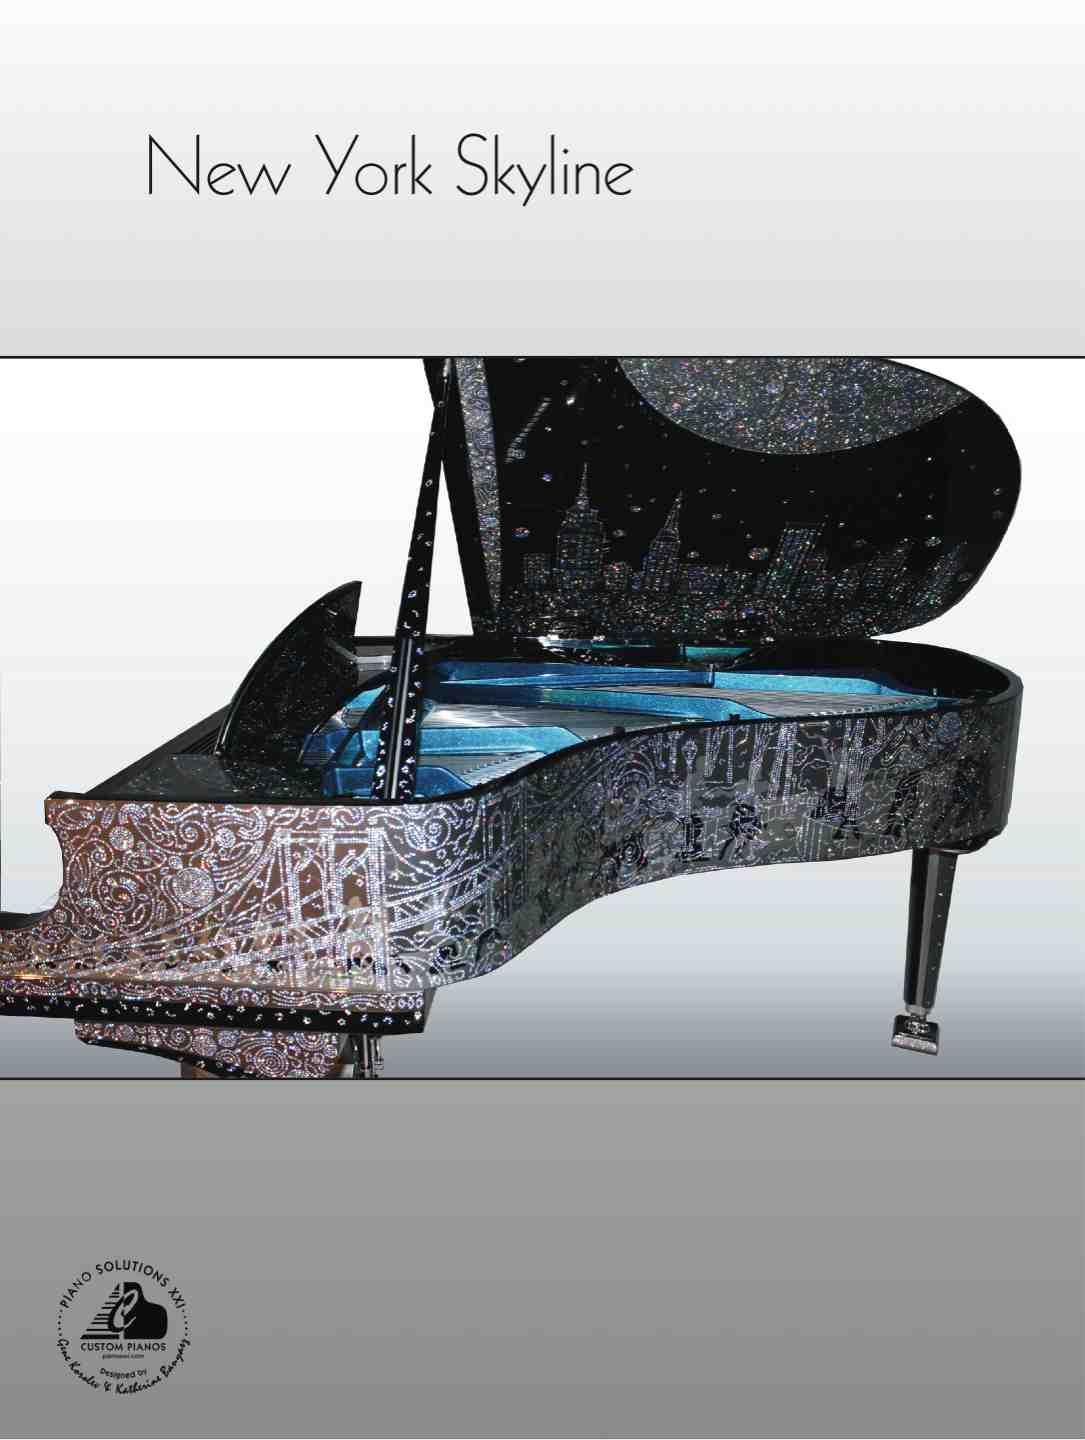 22 Discover New York Serenade Custom Piano